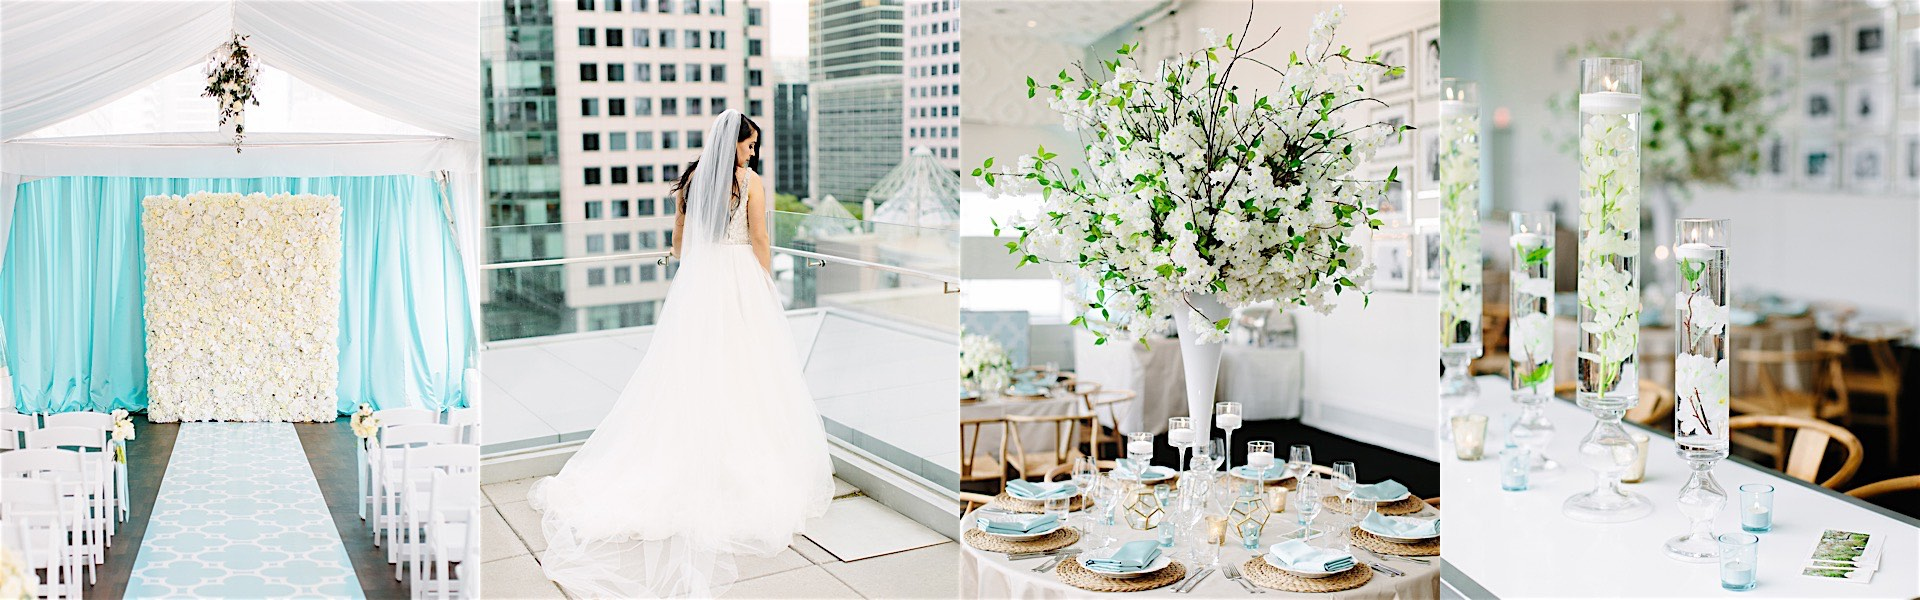 Toronto Wedding Sprinkled in Powder Blue Details - MODwedding